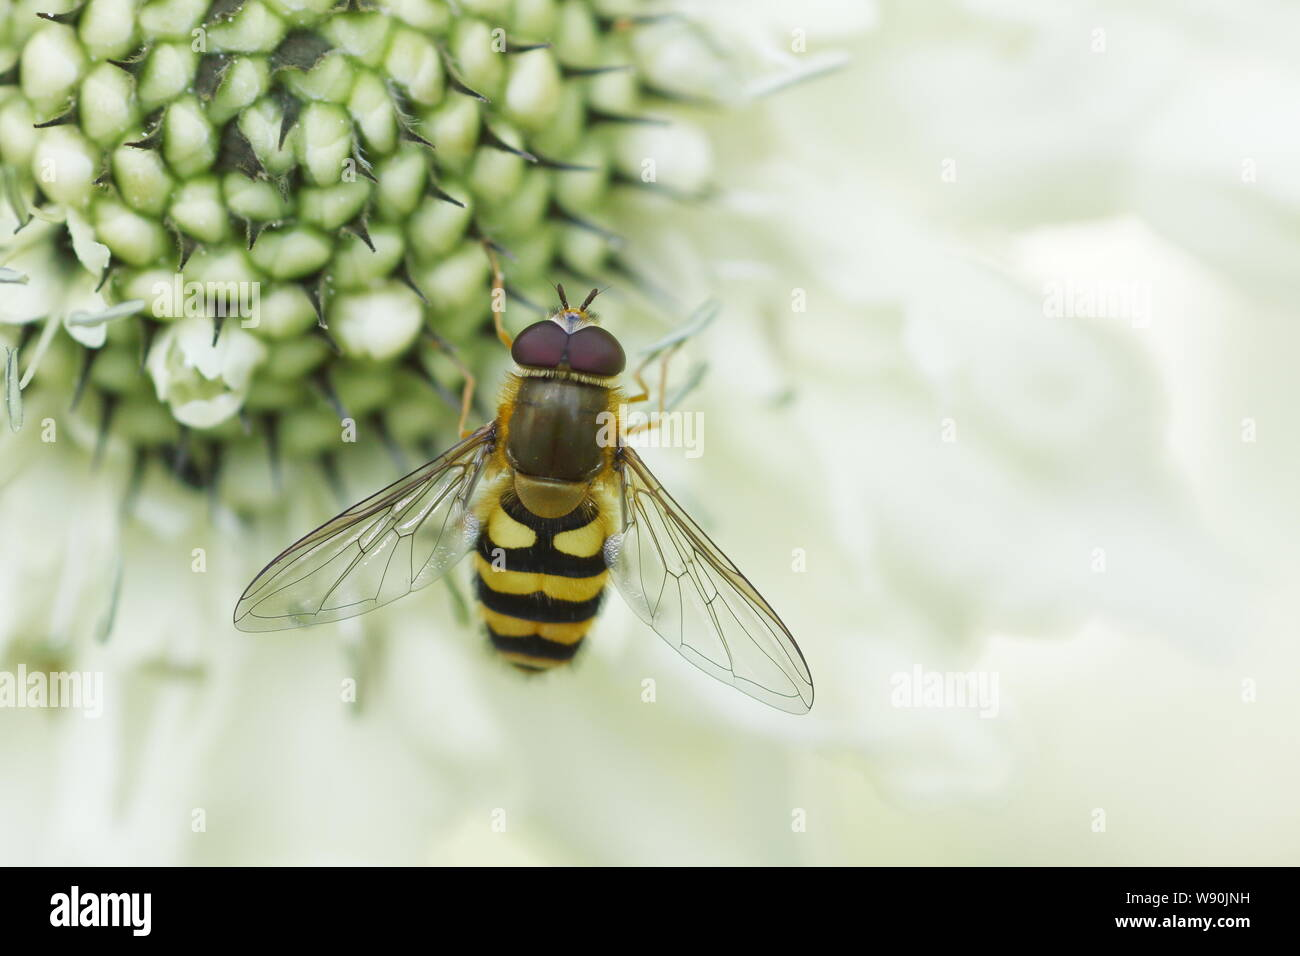 Hoverfly -  on Giant Scabious flower Syrphus species Essex, UK IN001090 Stock Photo